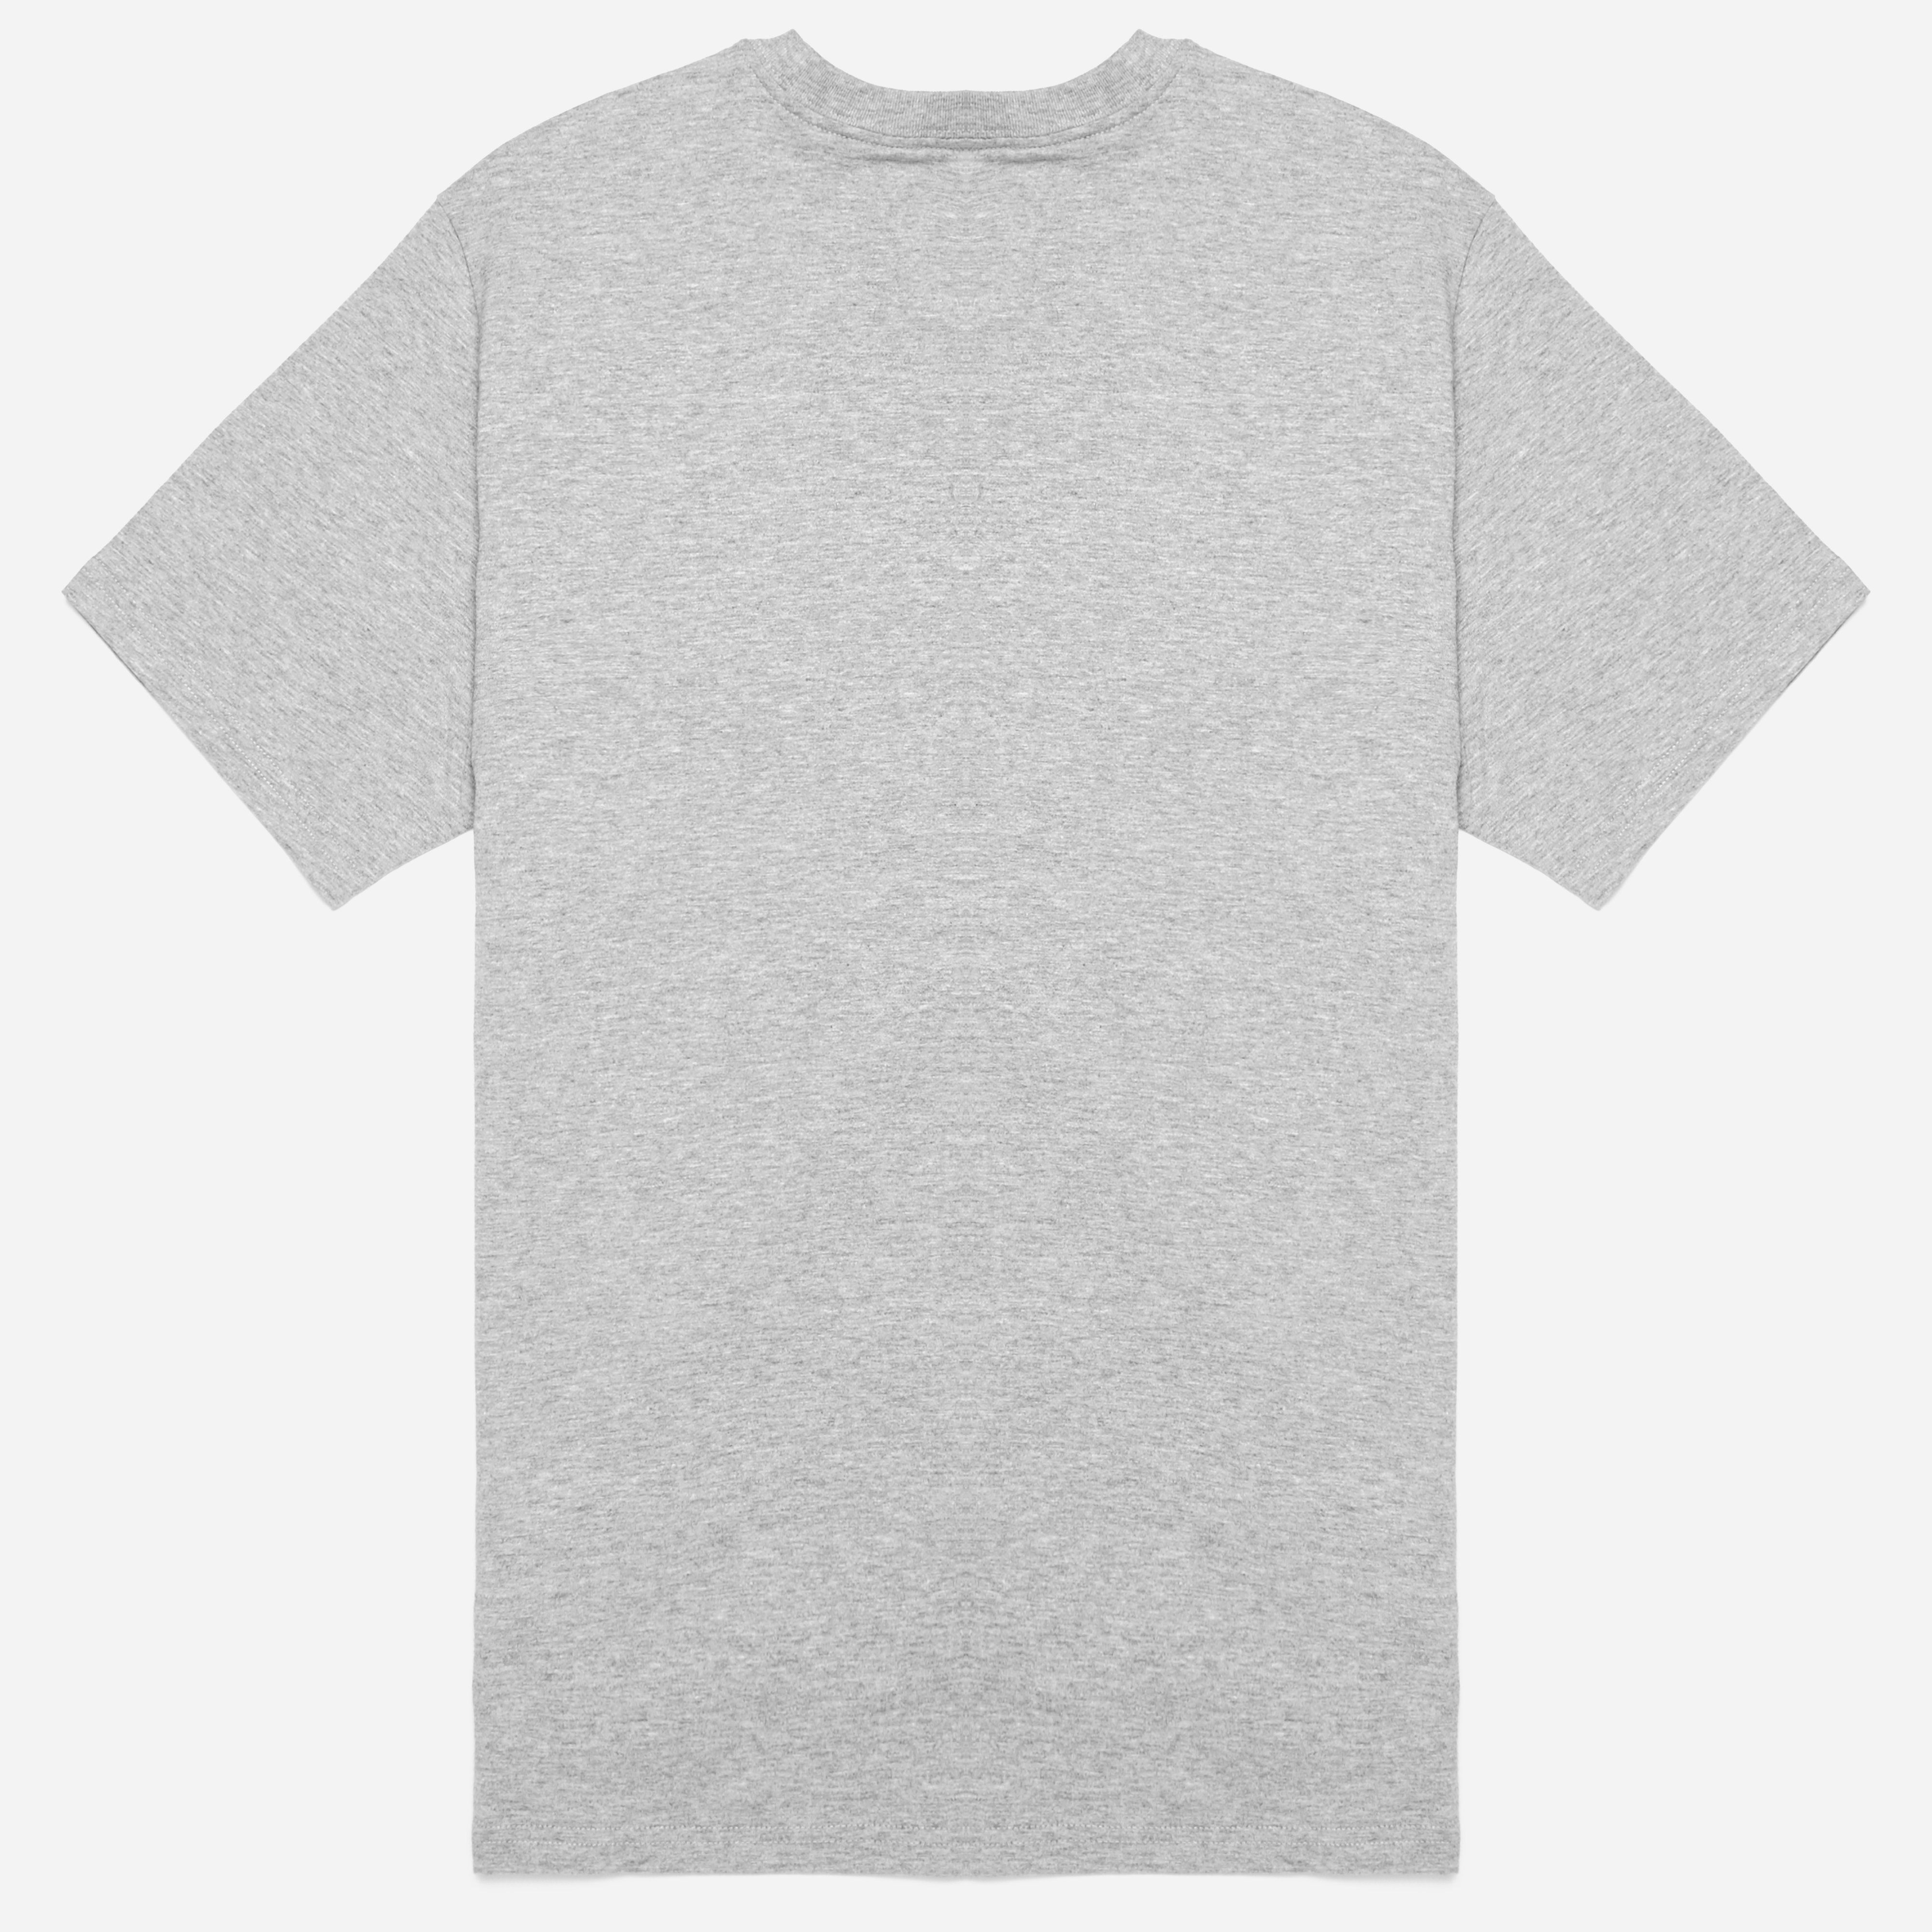 Carhartt WIP Single Jersey Script T-shirt